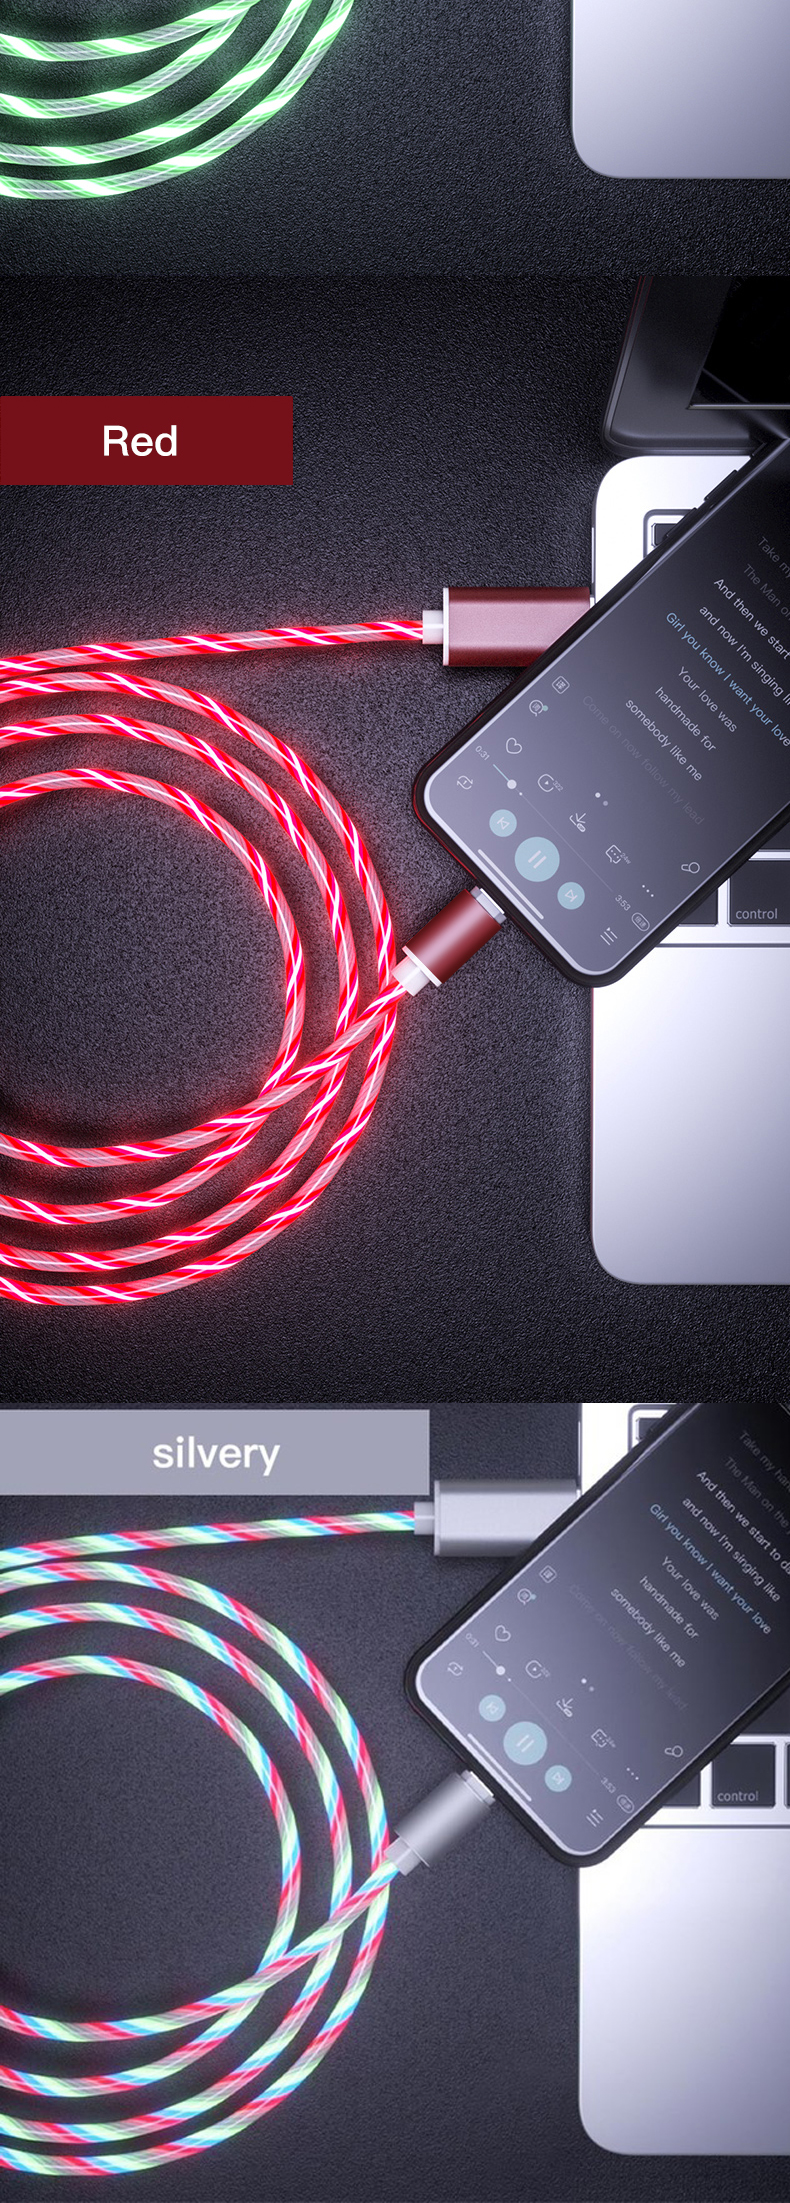 LED Glow Flowing magnetic Charger usb cable Type C Micro USB C 8 Pin Charging for 8-pin android magnetic Cable Charge Wire Cord